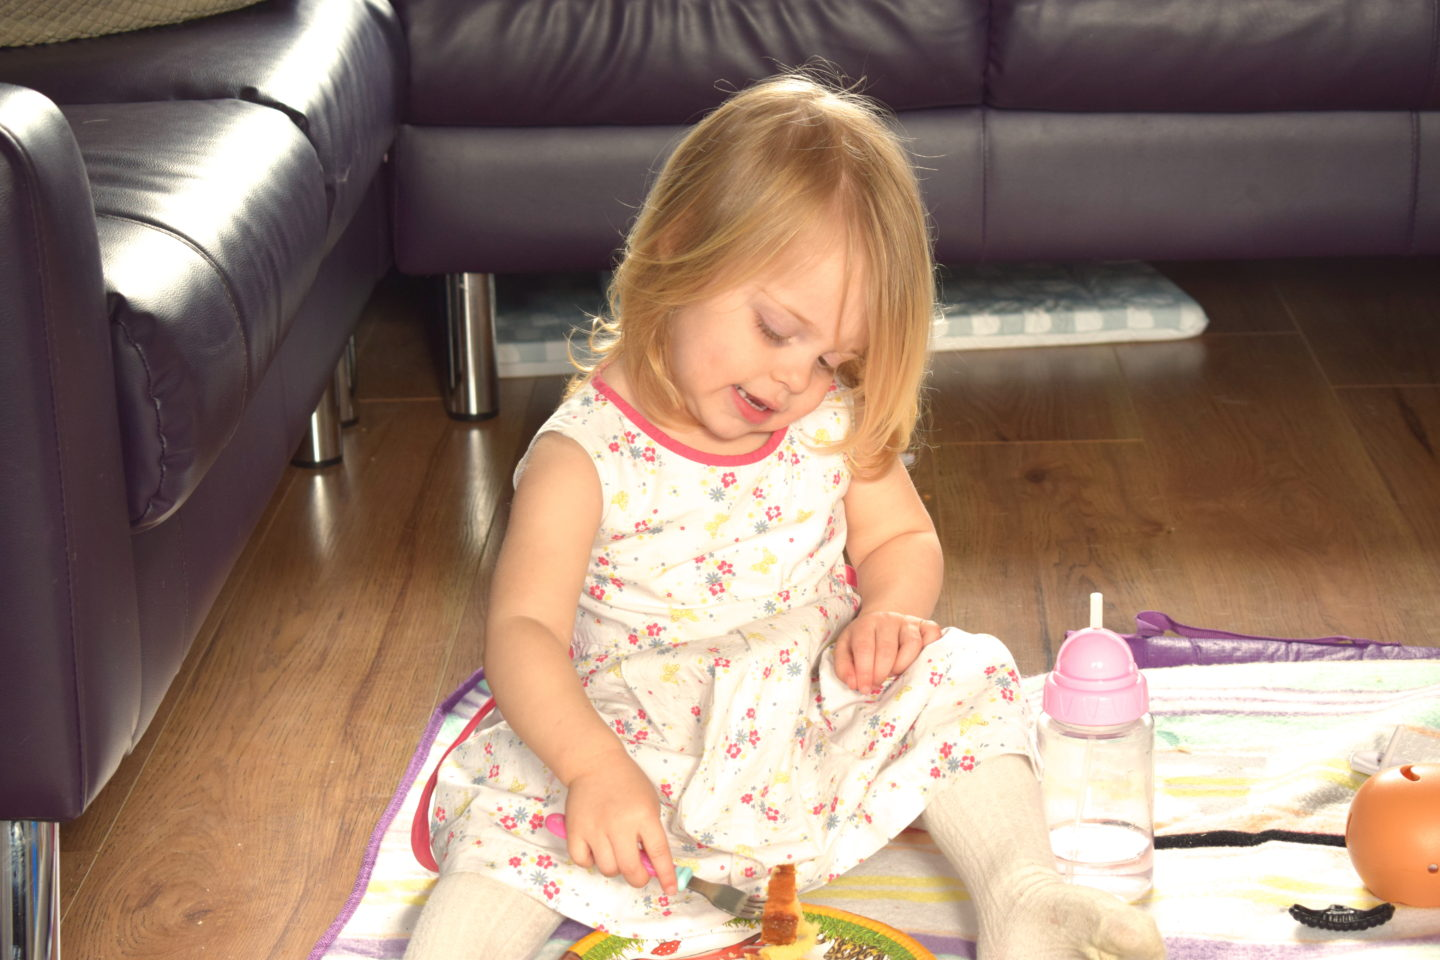 Two year old in a party dress, eating lunch on the floor